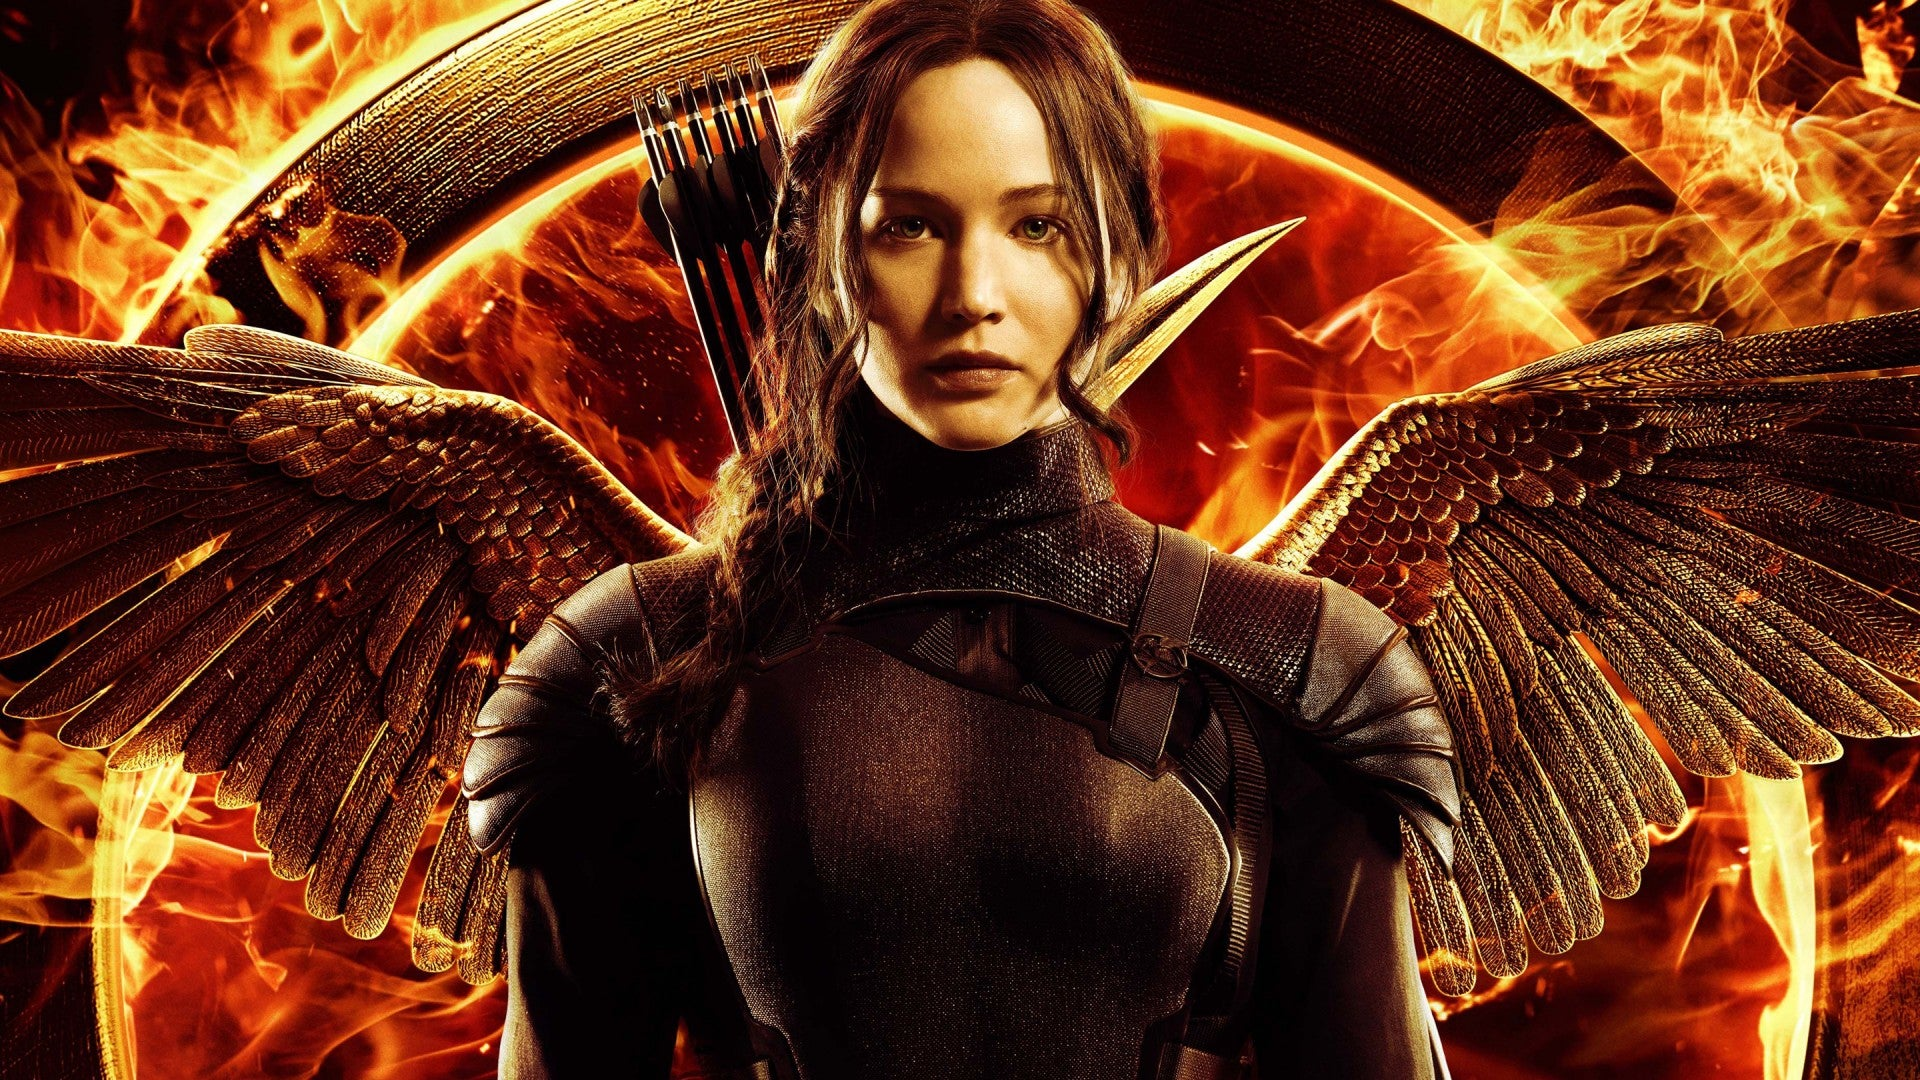 Jennifer Lawrence's Hanging Tree Dance Remix Released